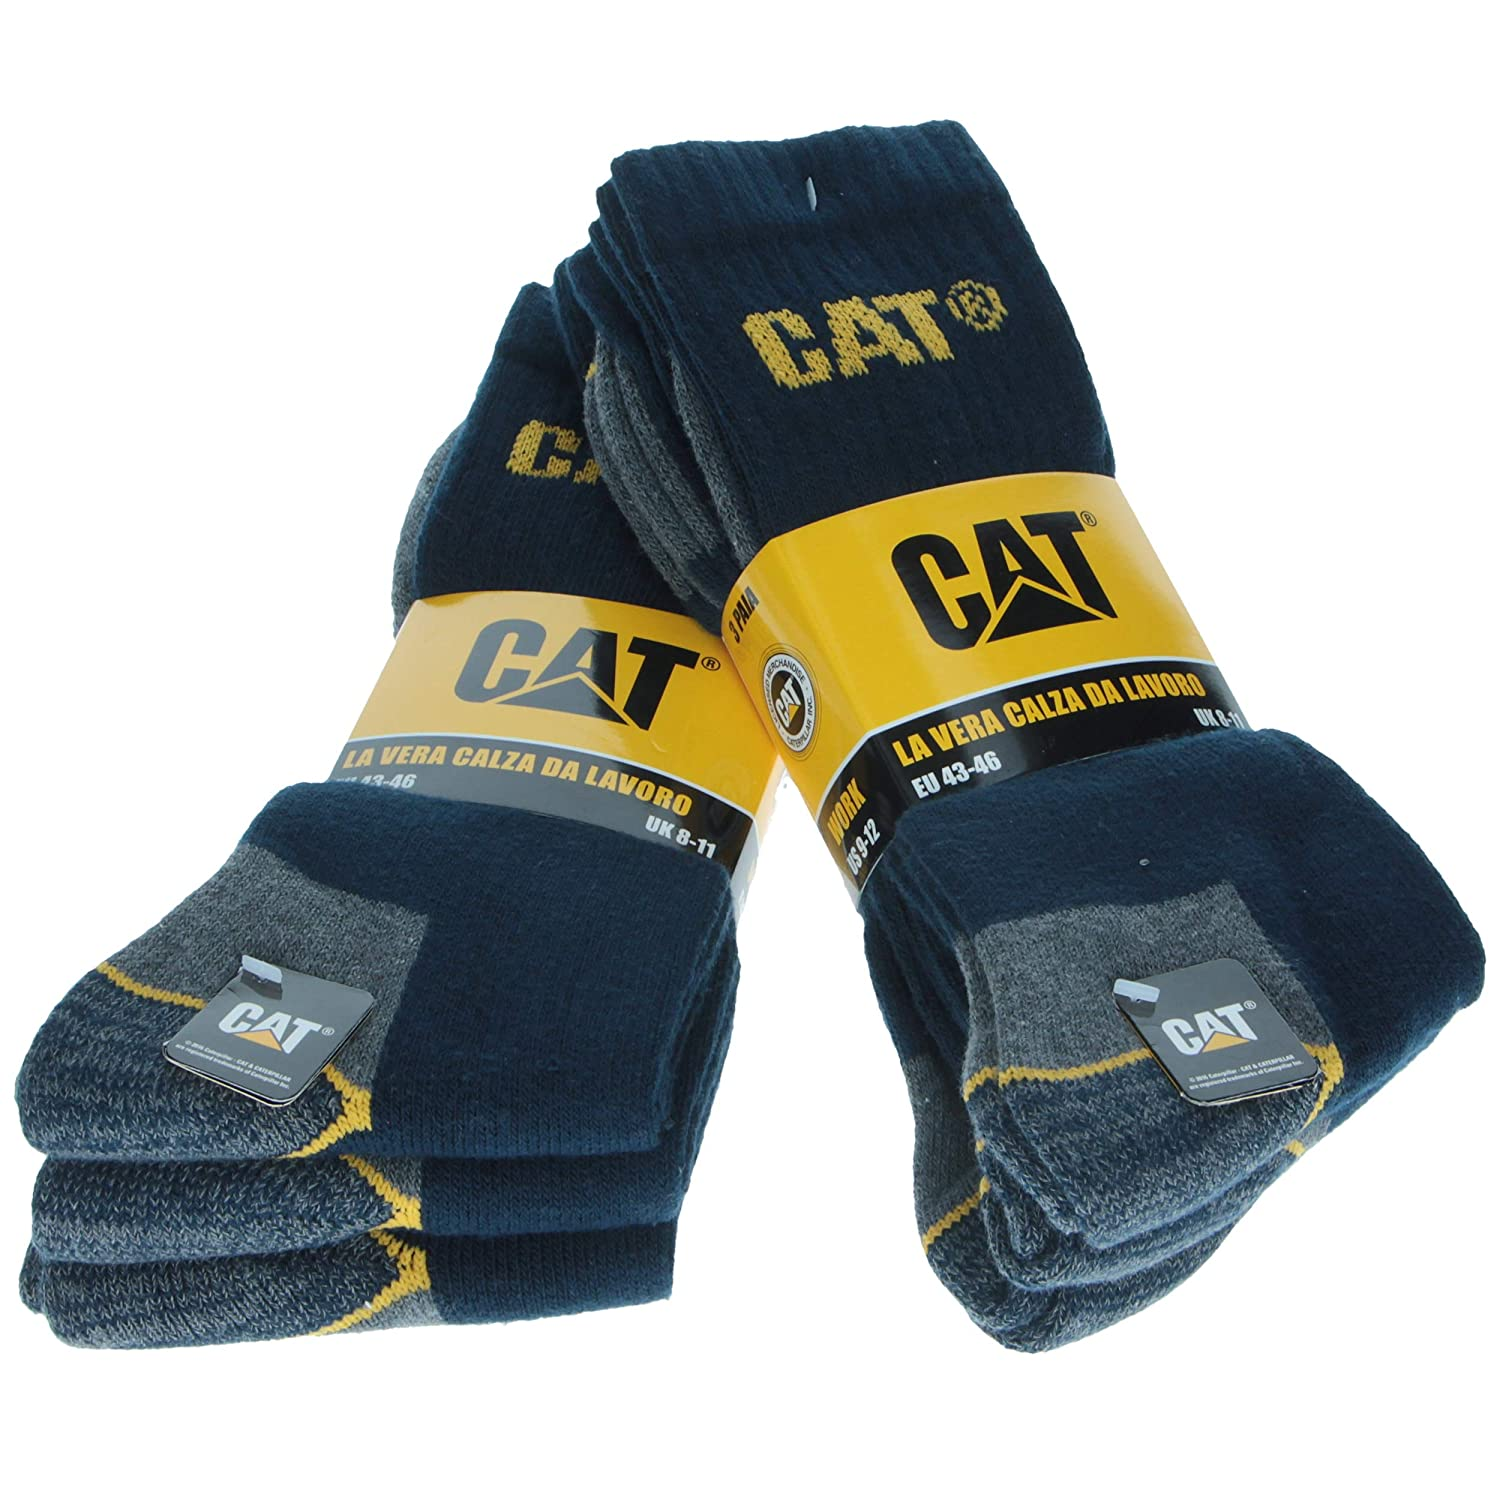 6 pairs Men's Work Socks Accident Prevention Reinforced on Heel and Toe with Reinforced Weft CAT CATERPILLAR Yarn of Excellent Quality Cotton Sponge available in various colors